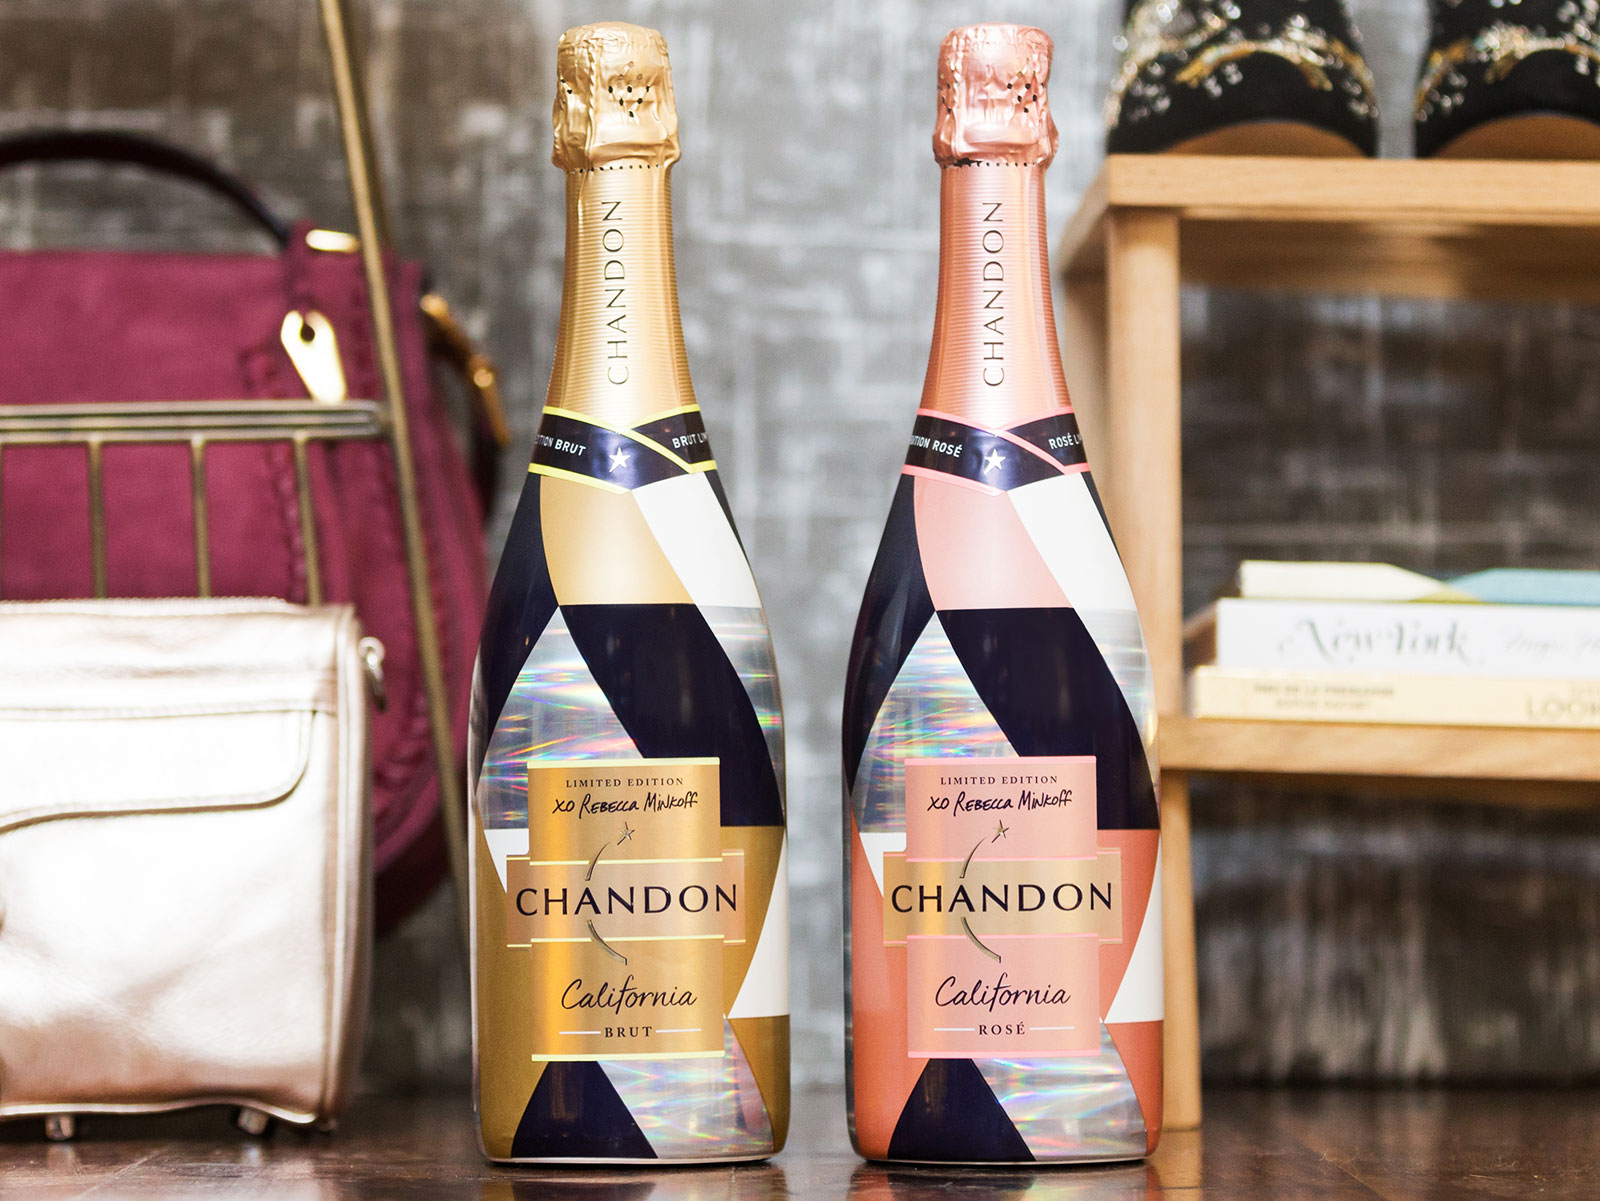 chandon california brut and rose